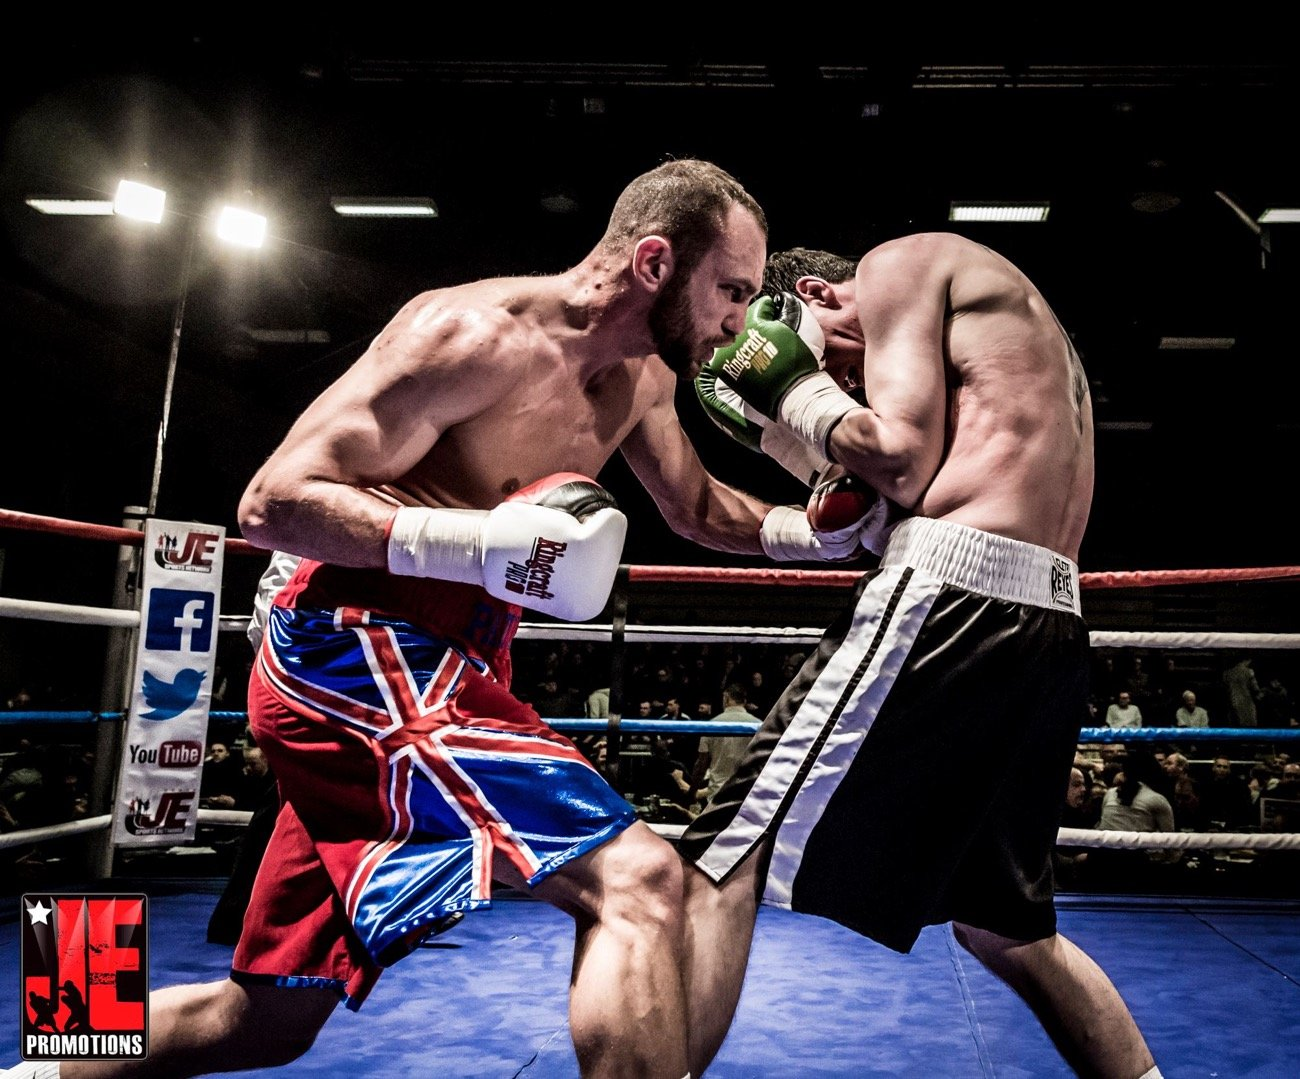 Paul Brown - Paul 'Bomber' Brown (4-0) heads back to the ring on February 29 at Mote Park in Maidstone after a bout of inactivity that has seen him fight just once in 16 months.